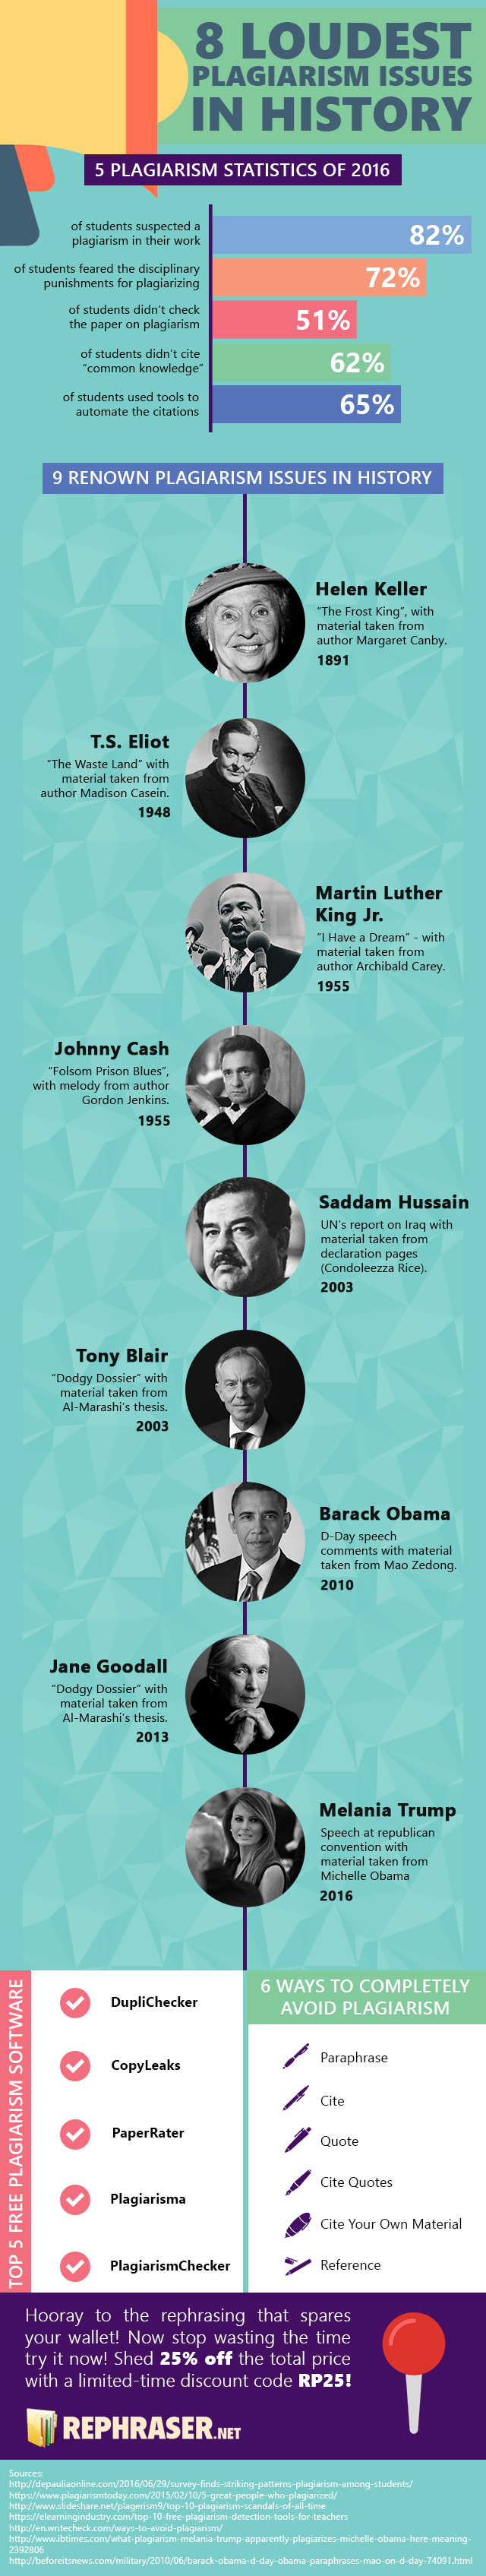 famous plagiarists in history infographic